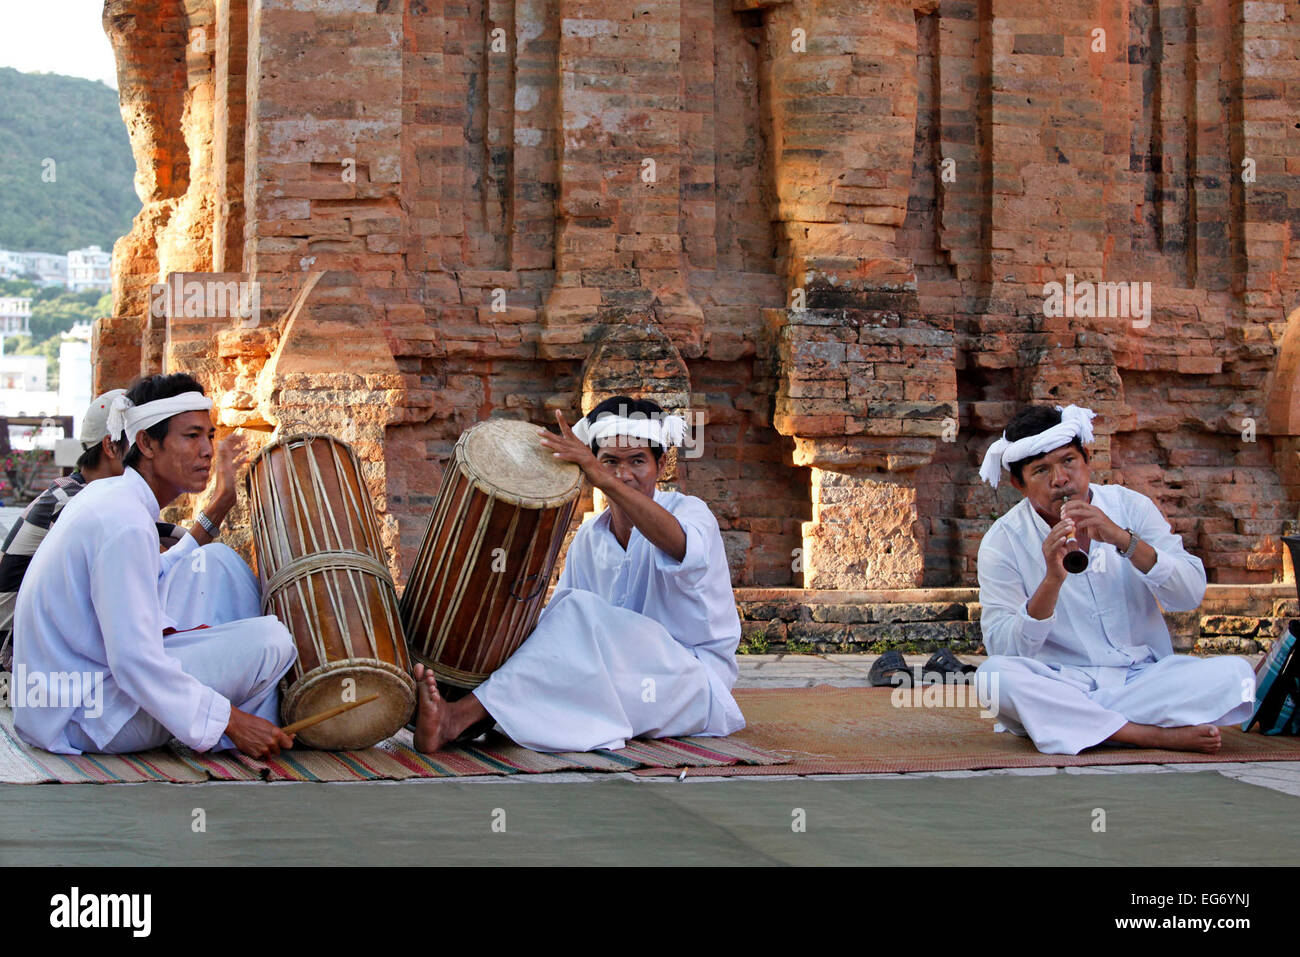 Cham playing traditional music at the Po Nagar Cham Towers in Nha Trang, Vietnam. - Stock Image